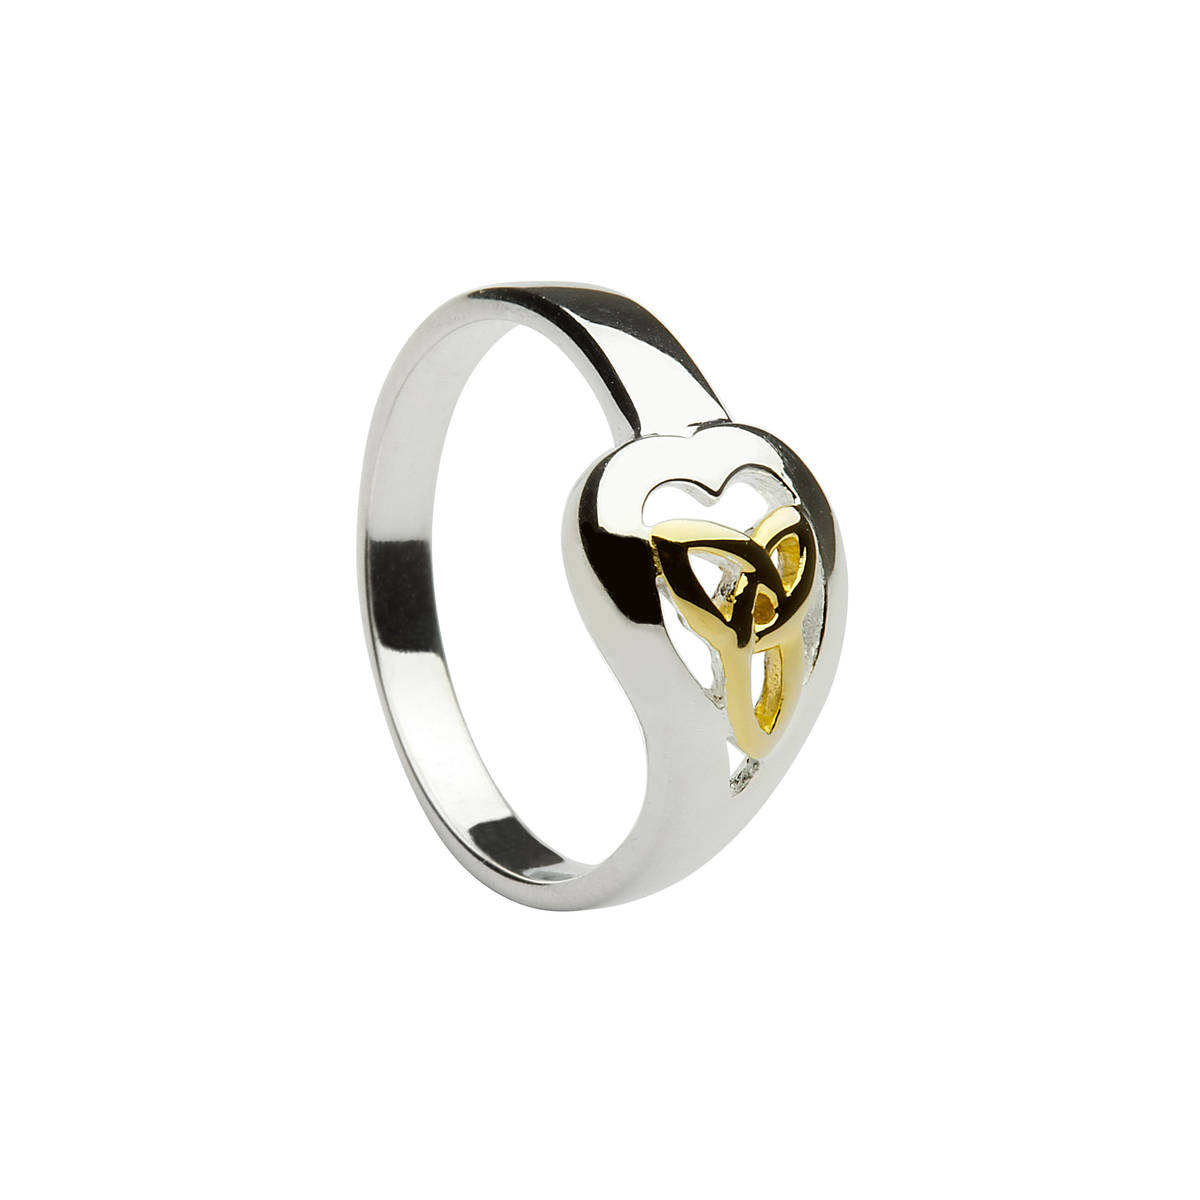 Silver ring with GP trinity knot centre.RS00008